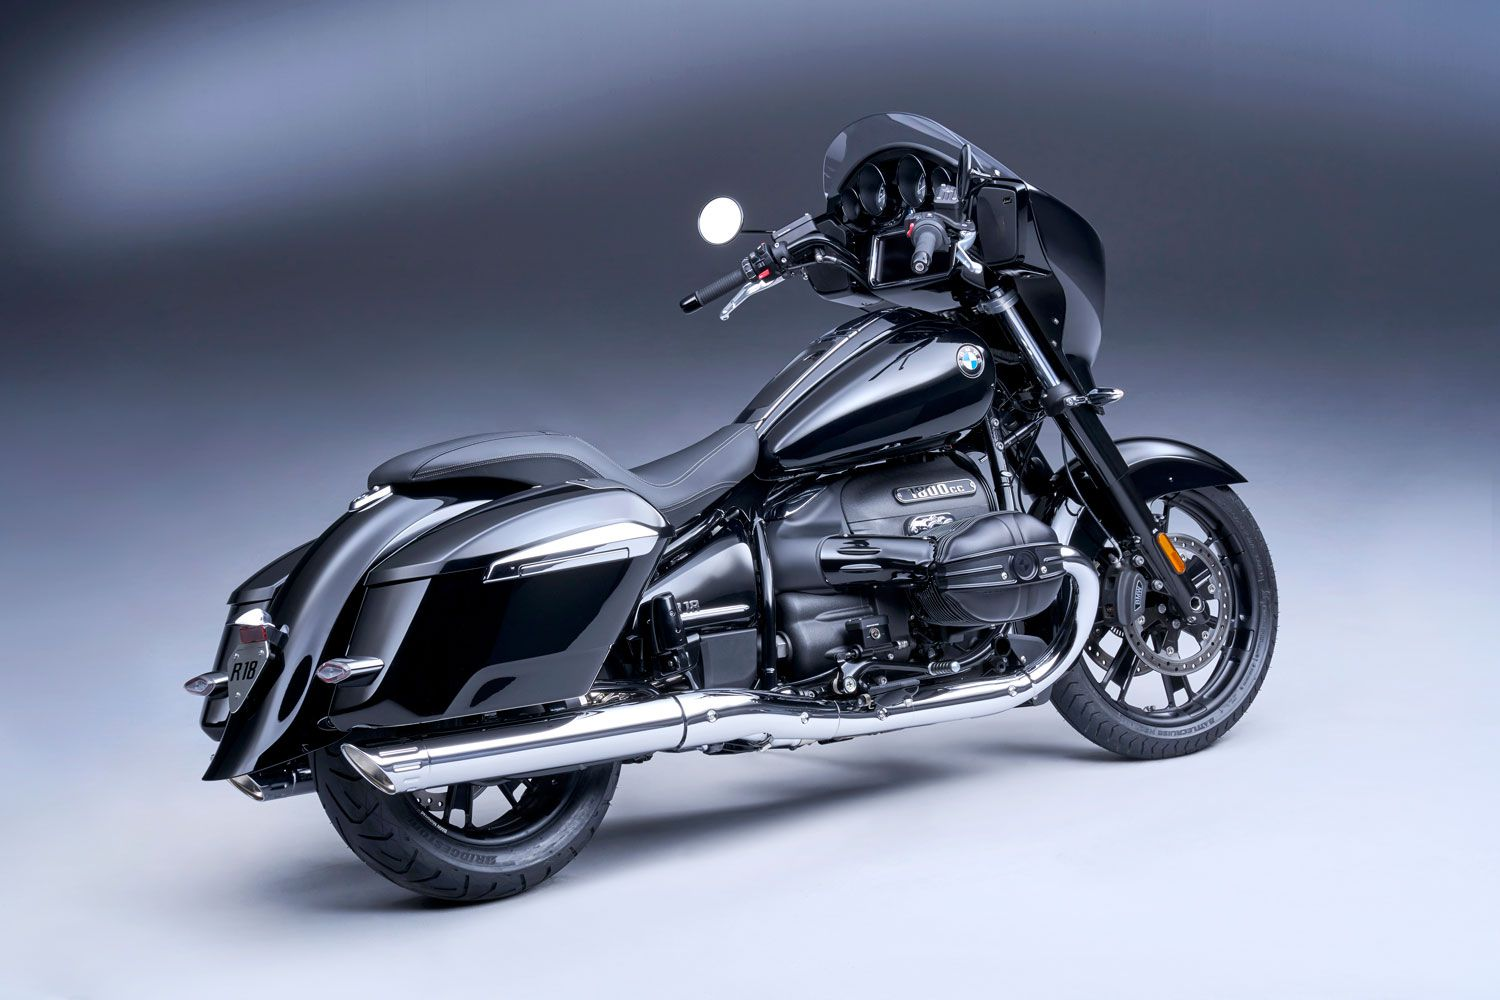 The 2022 BMW R 18 B bagger model in gloss black paint.